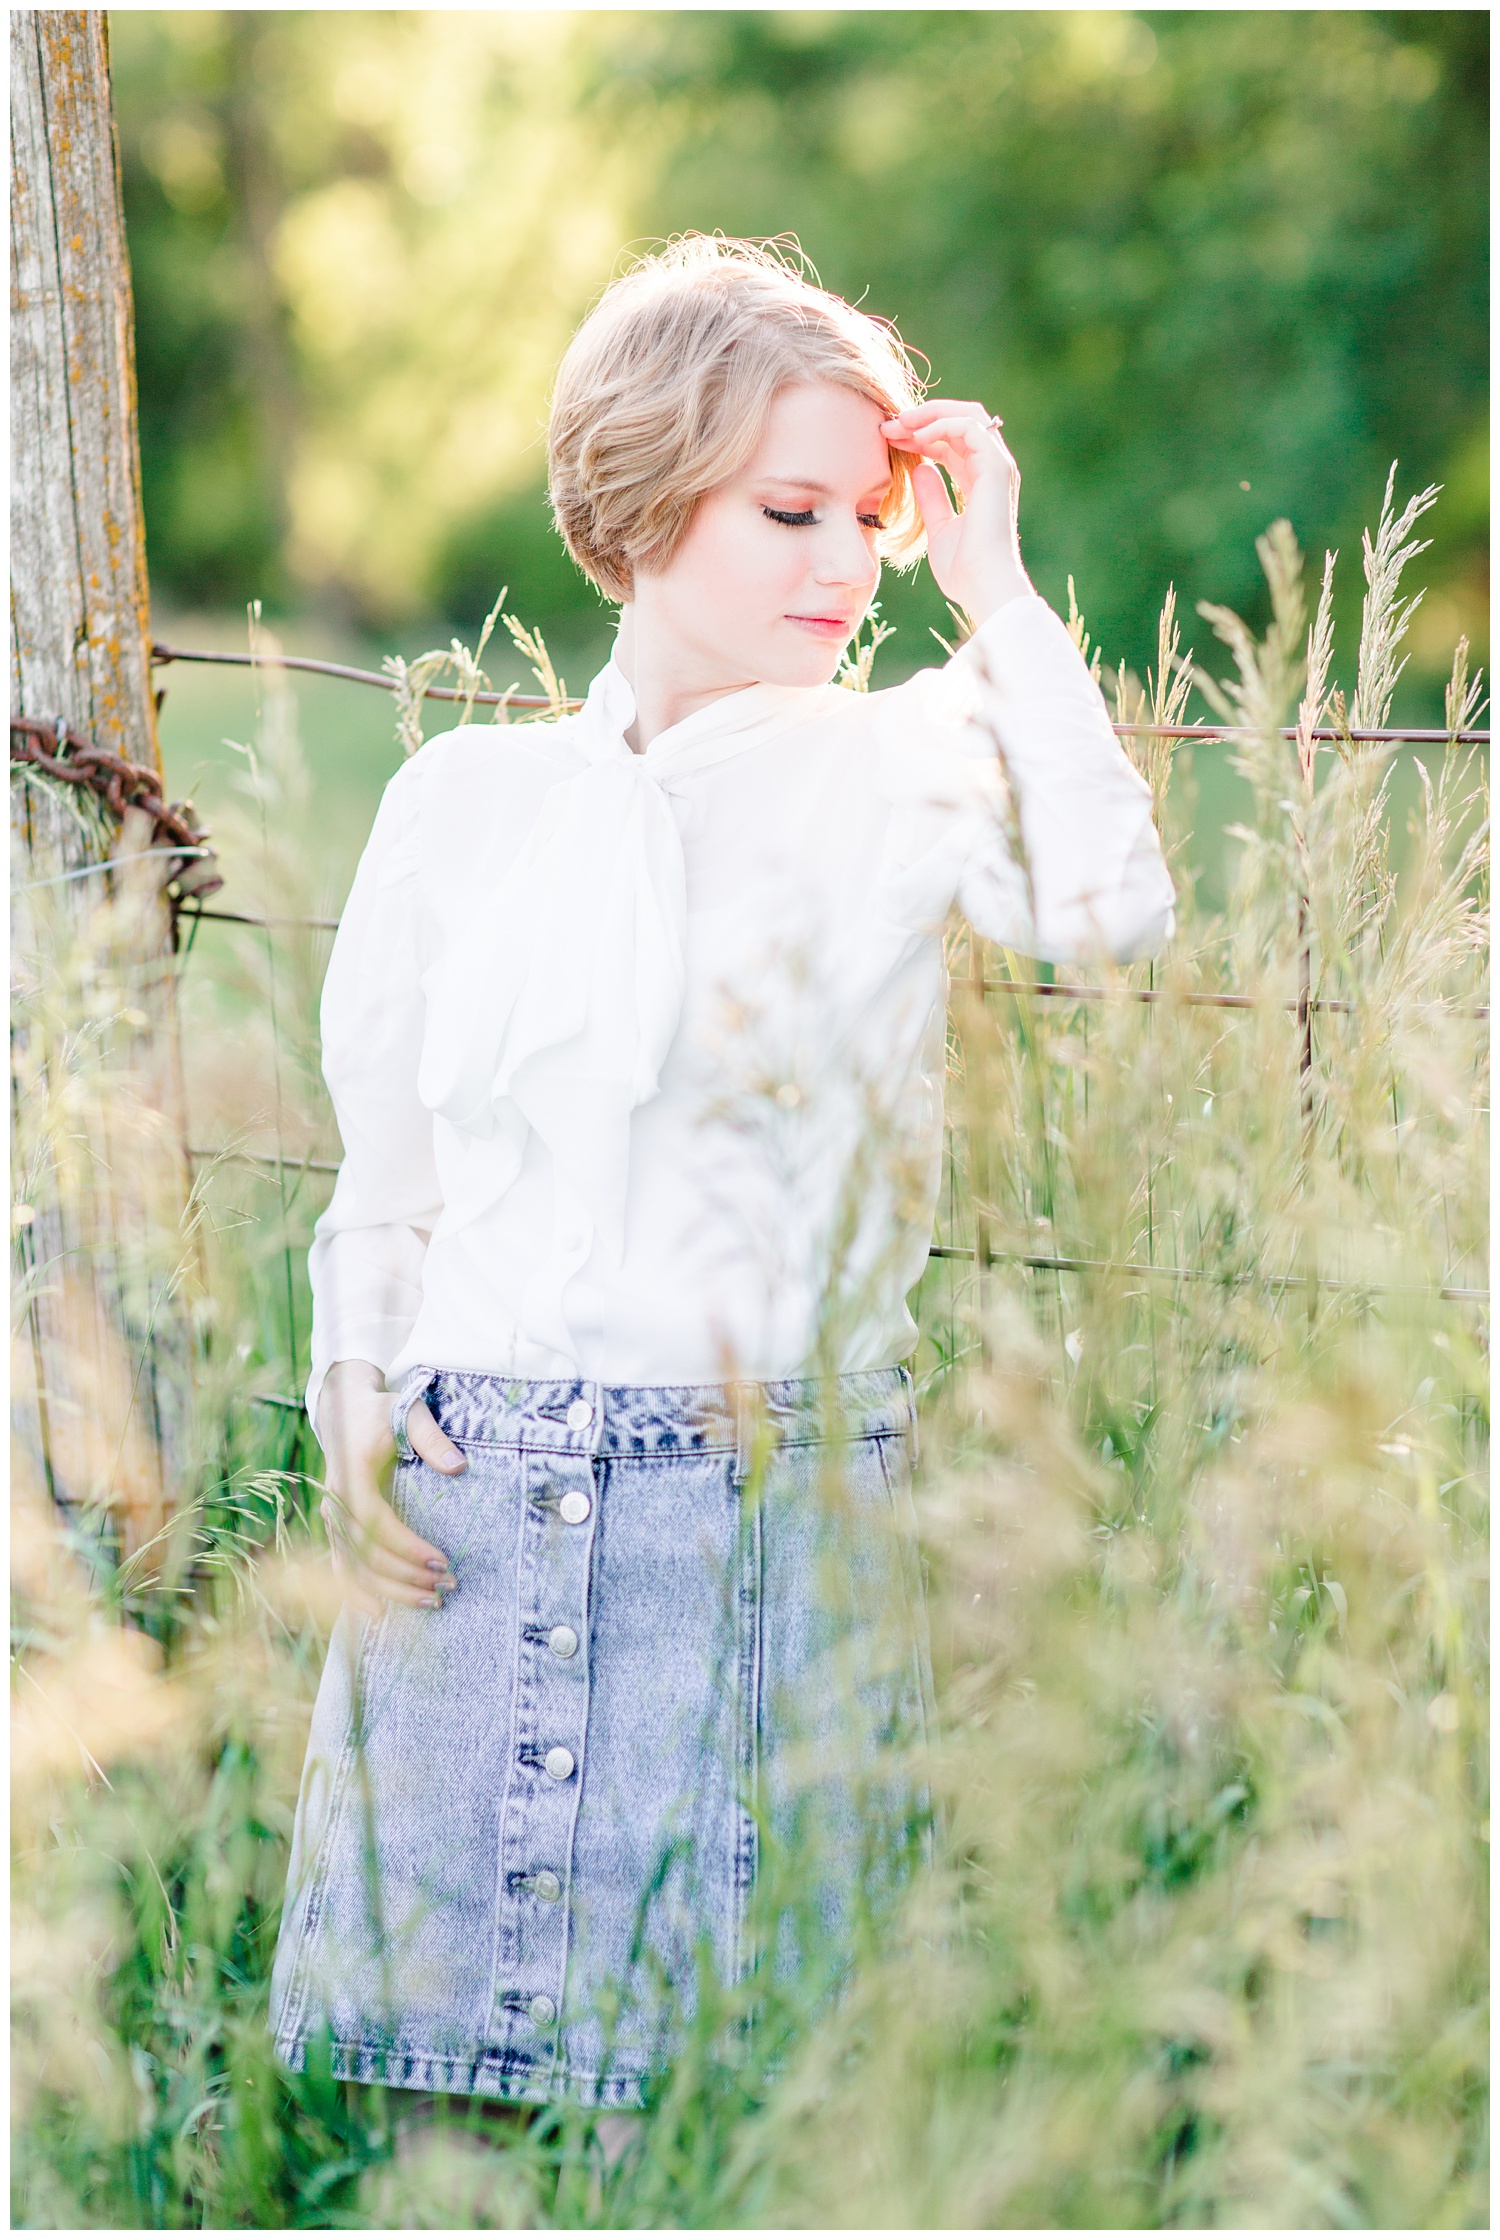 Vintage, film inspired senior photoshoot at golden hour in a grassy field. | CB Studio